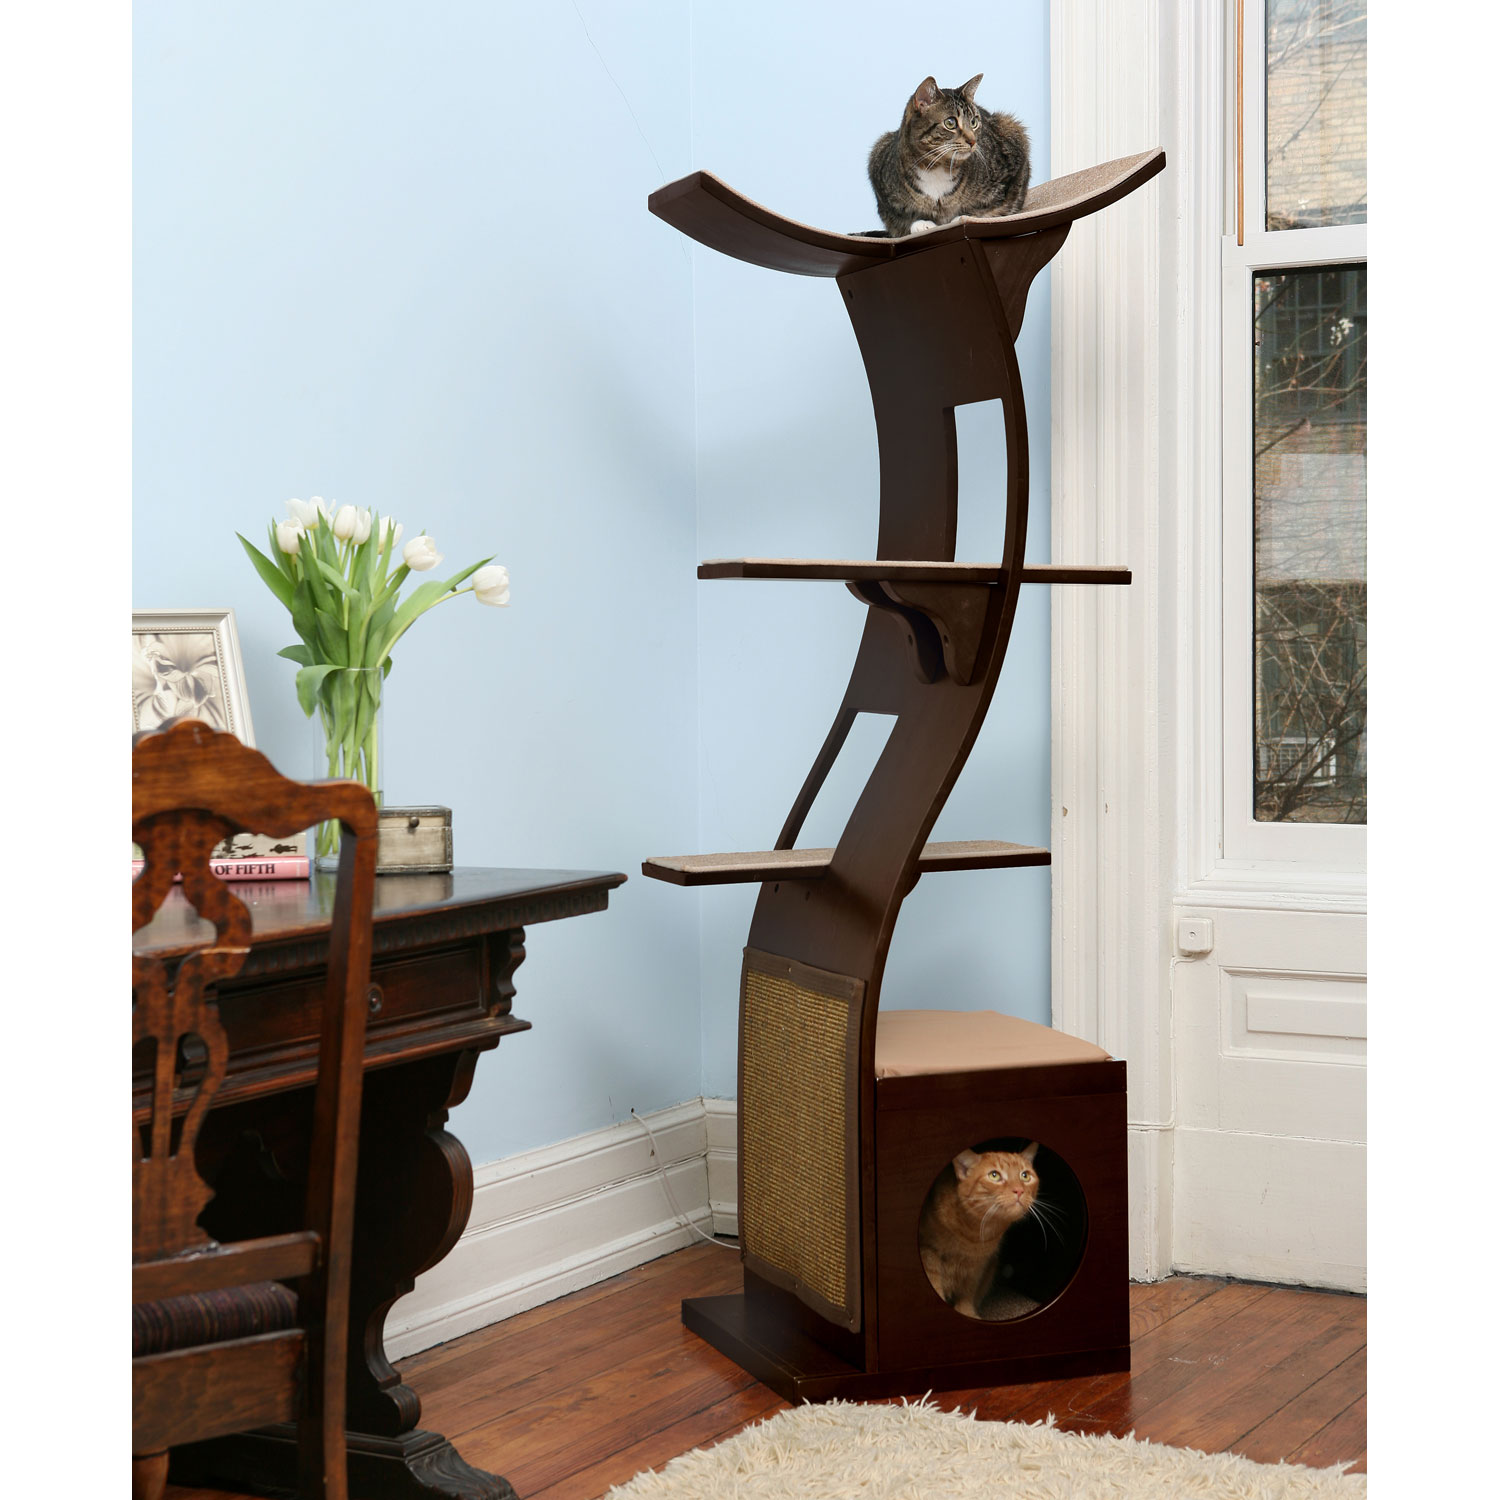 Premium Cat Furniture Cat Condos Cat Trees Towers Gyms Cat Beds Cat Houses